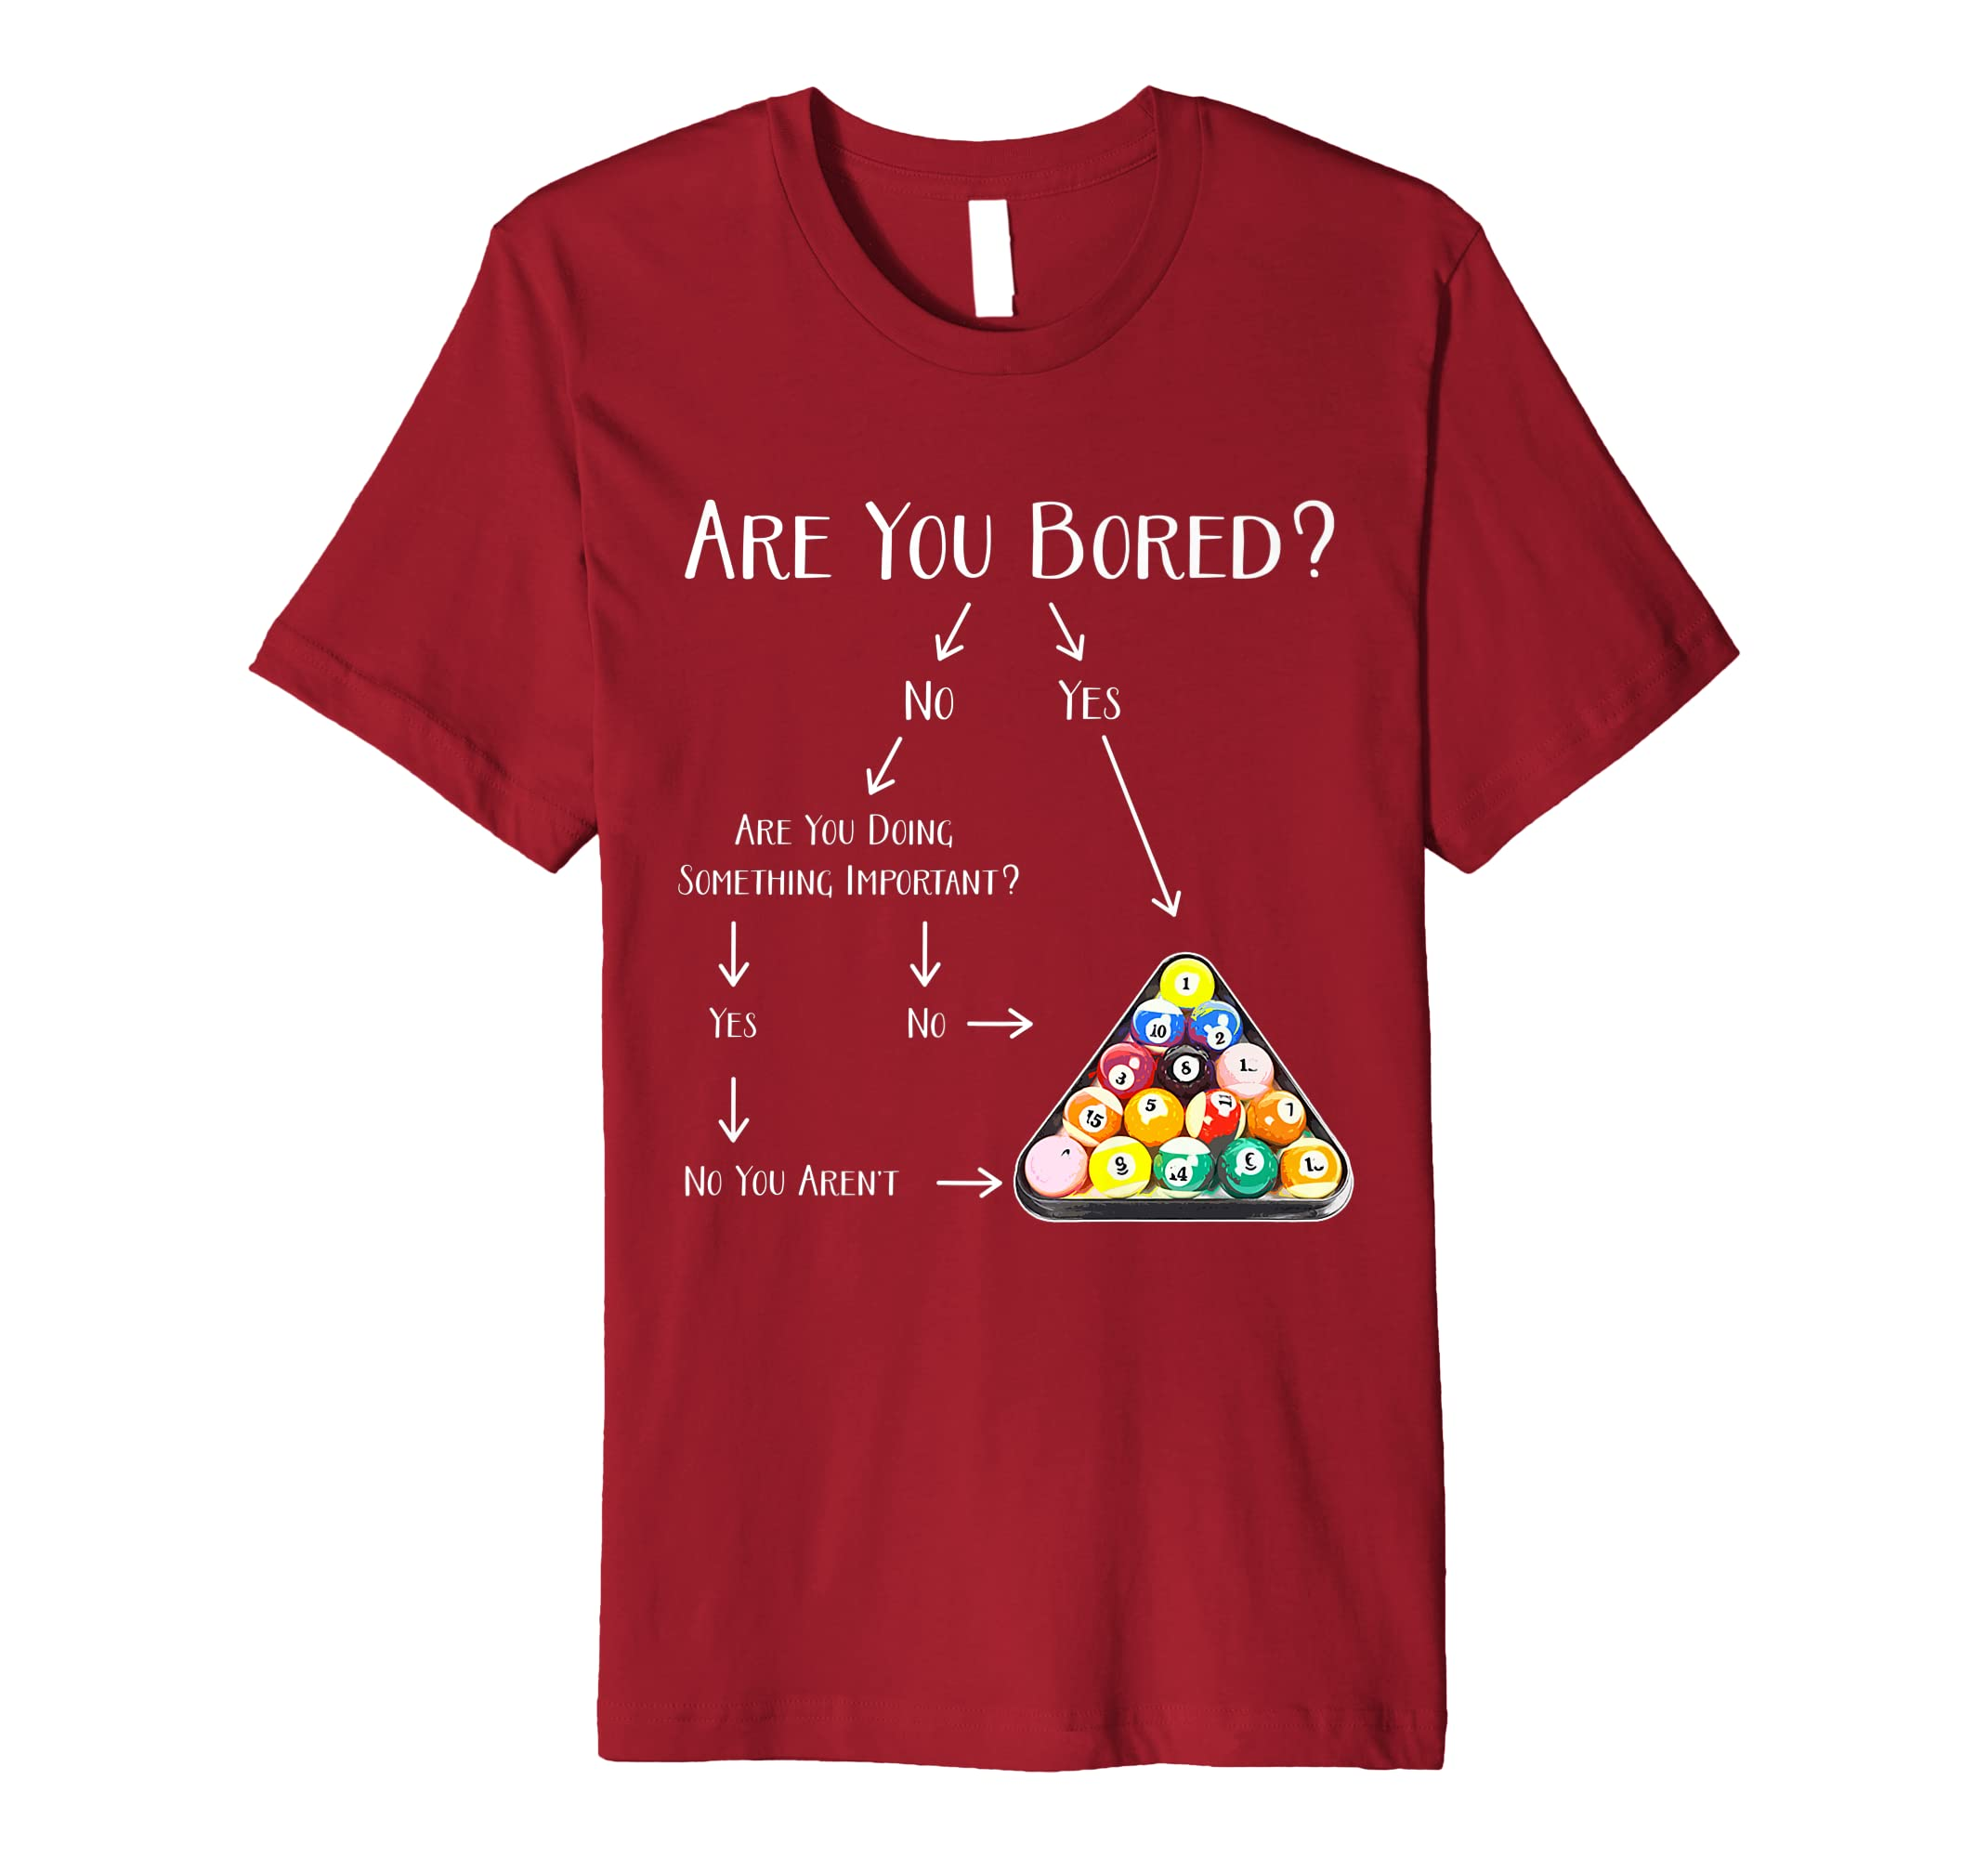 6d501d1b91fd8 Amazon.com: Are You Bored - Men, Kids & Womens Eight Ball Pool Gear ...